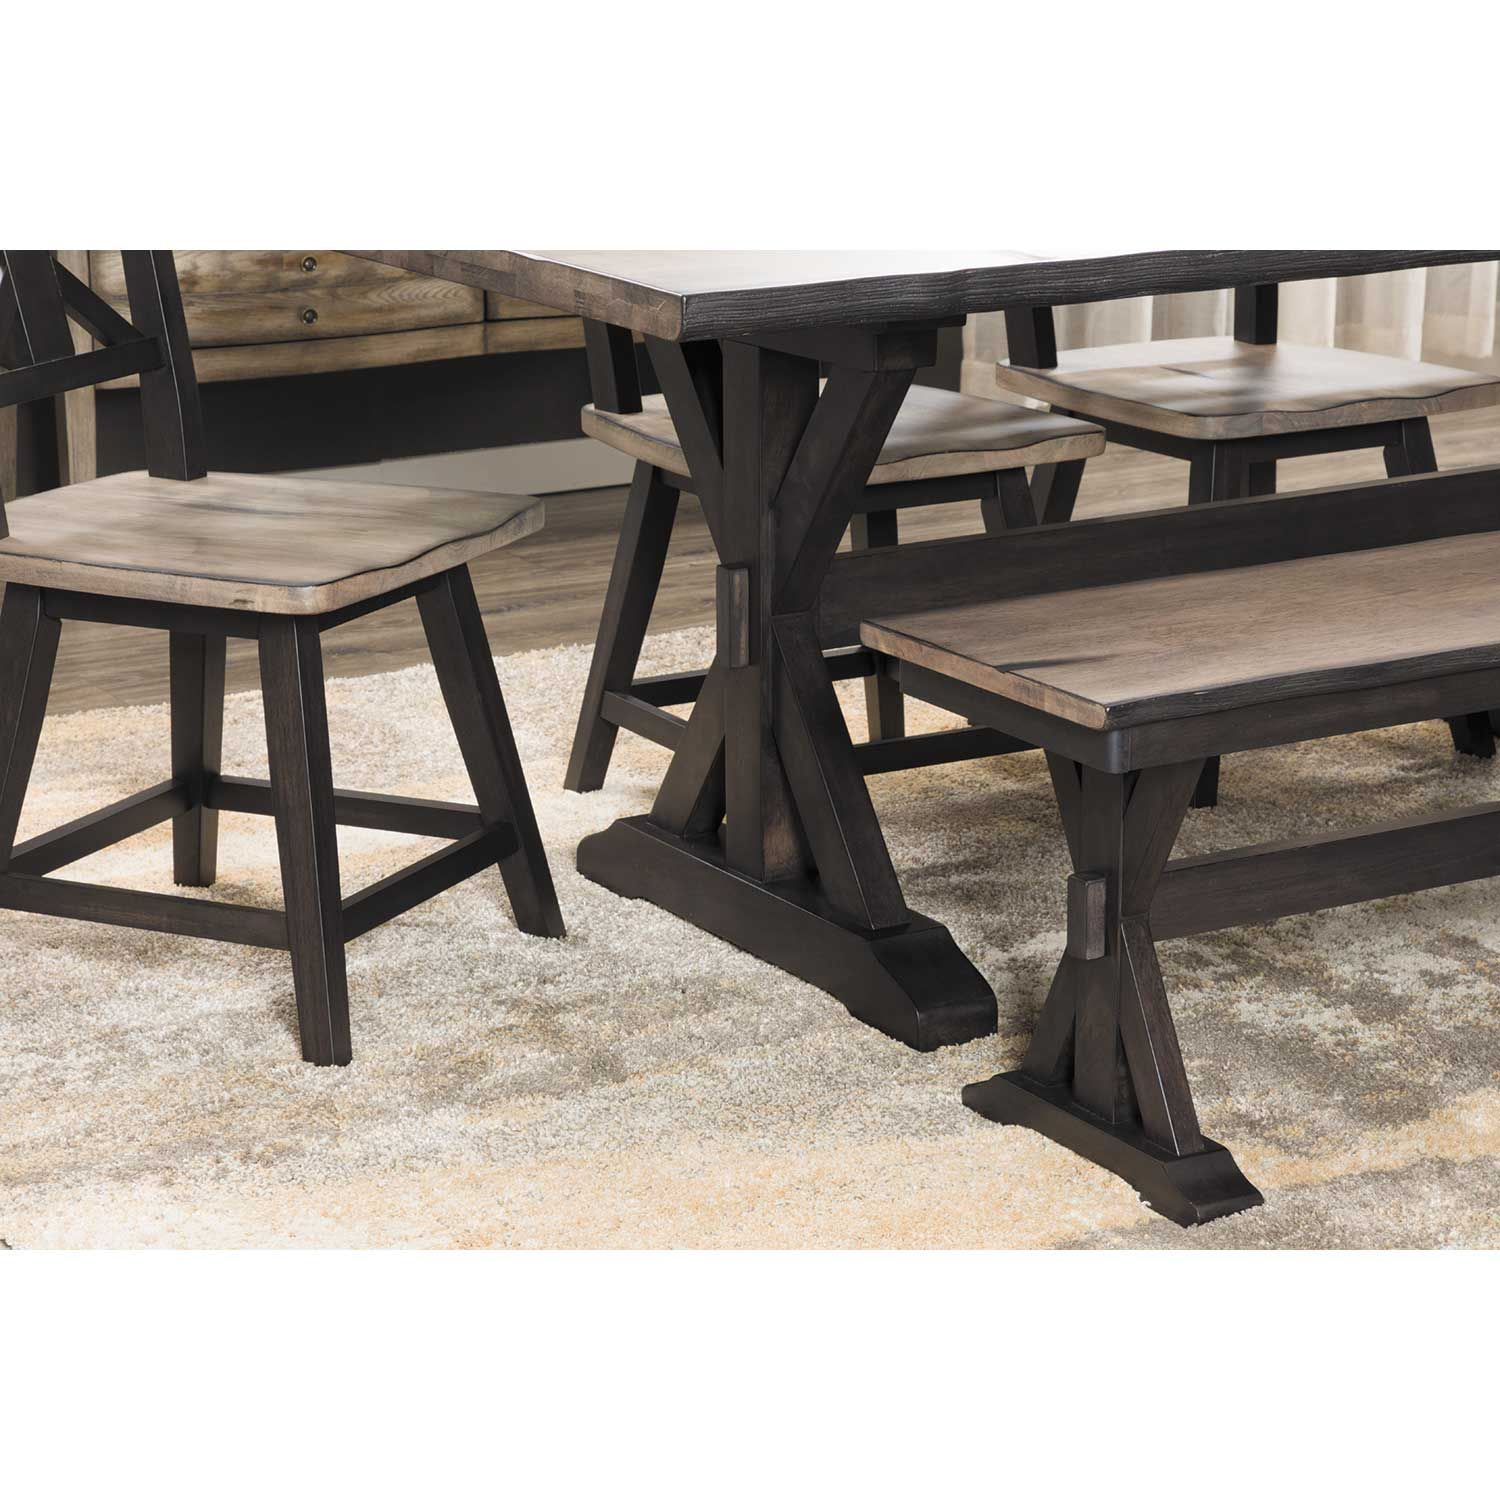 Farmhouse Dining Table: Urban Farmhouse Dining Table